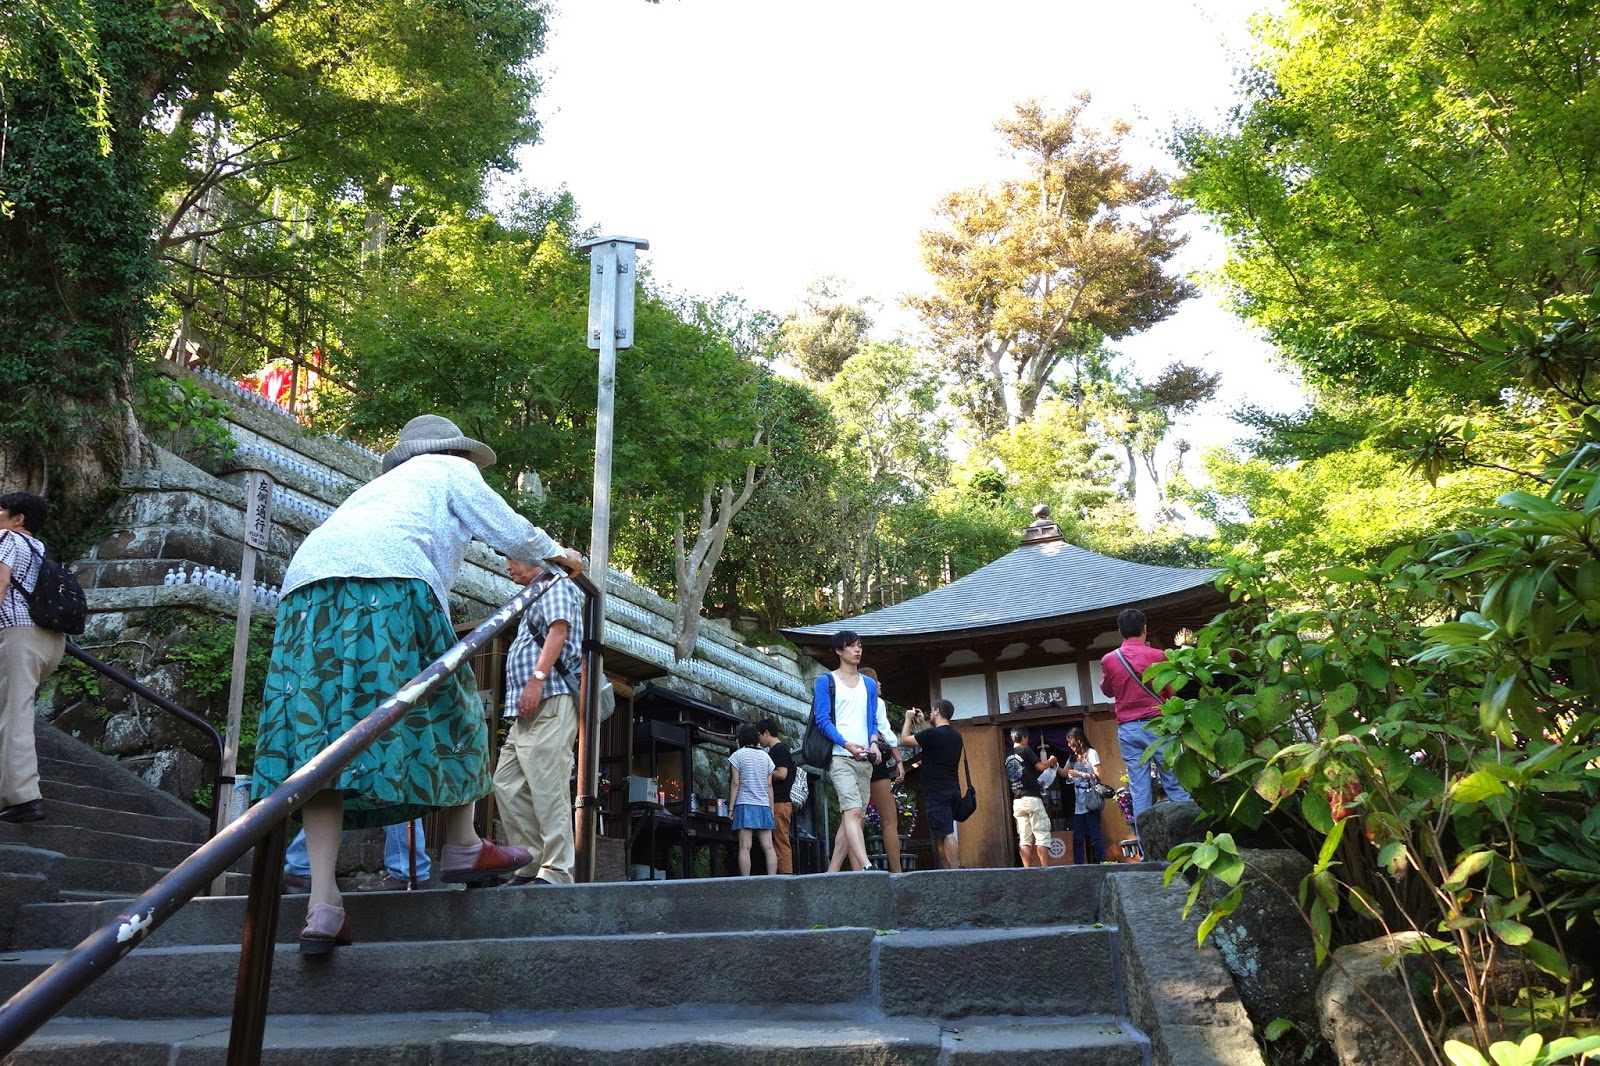 Hasedera 長谷寺 temple Hase Temple kamakura japan tour trip